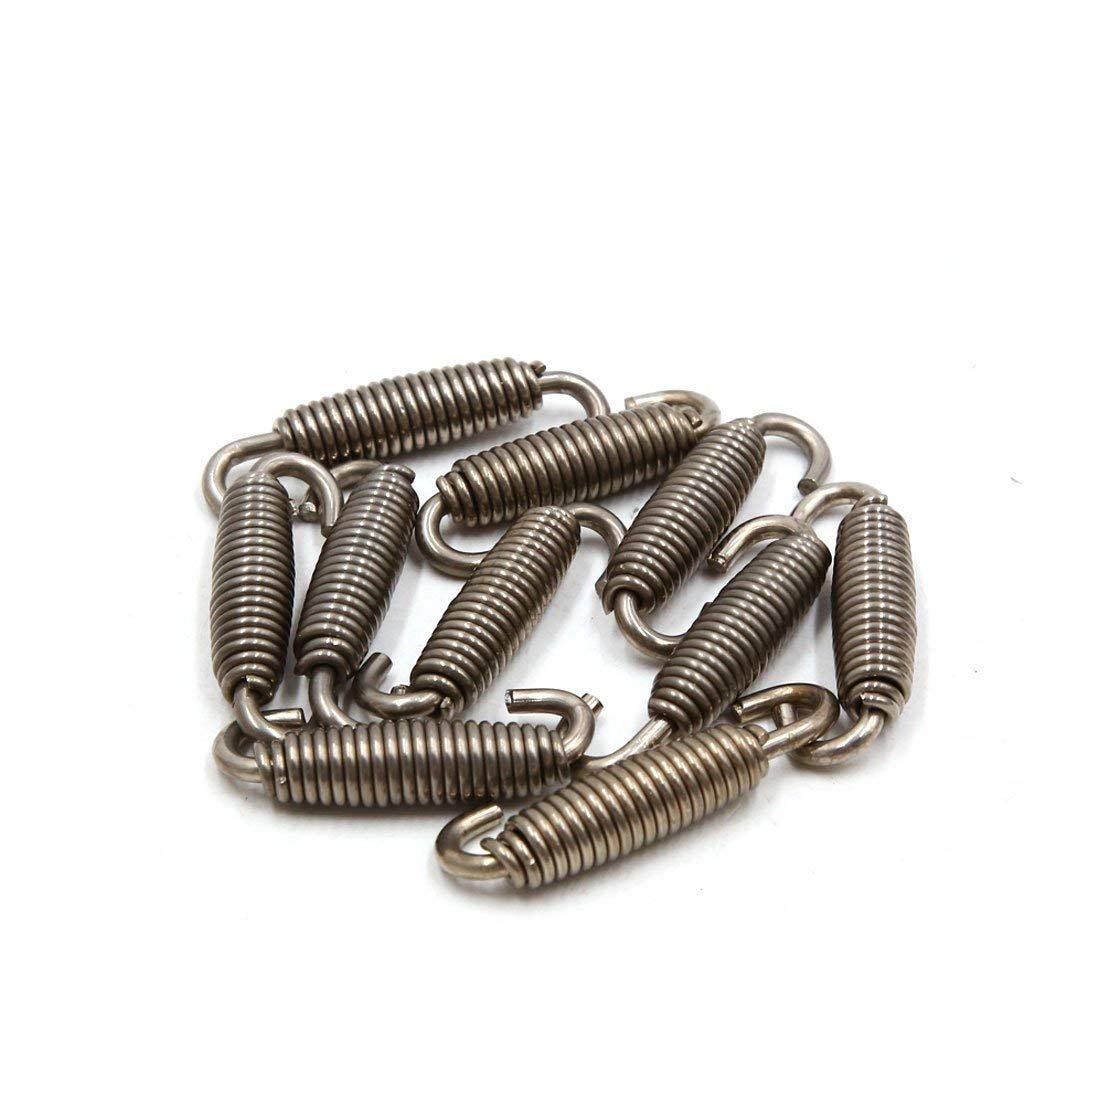 uxcell/® 10pcs Silver Tone Motorcycle Exhaust Pipe Silencer Muffler Springs Swivel Hooks